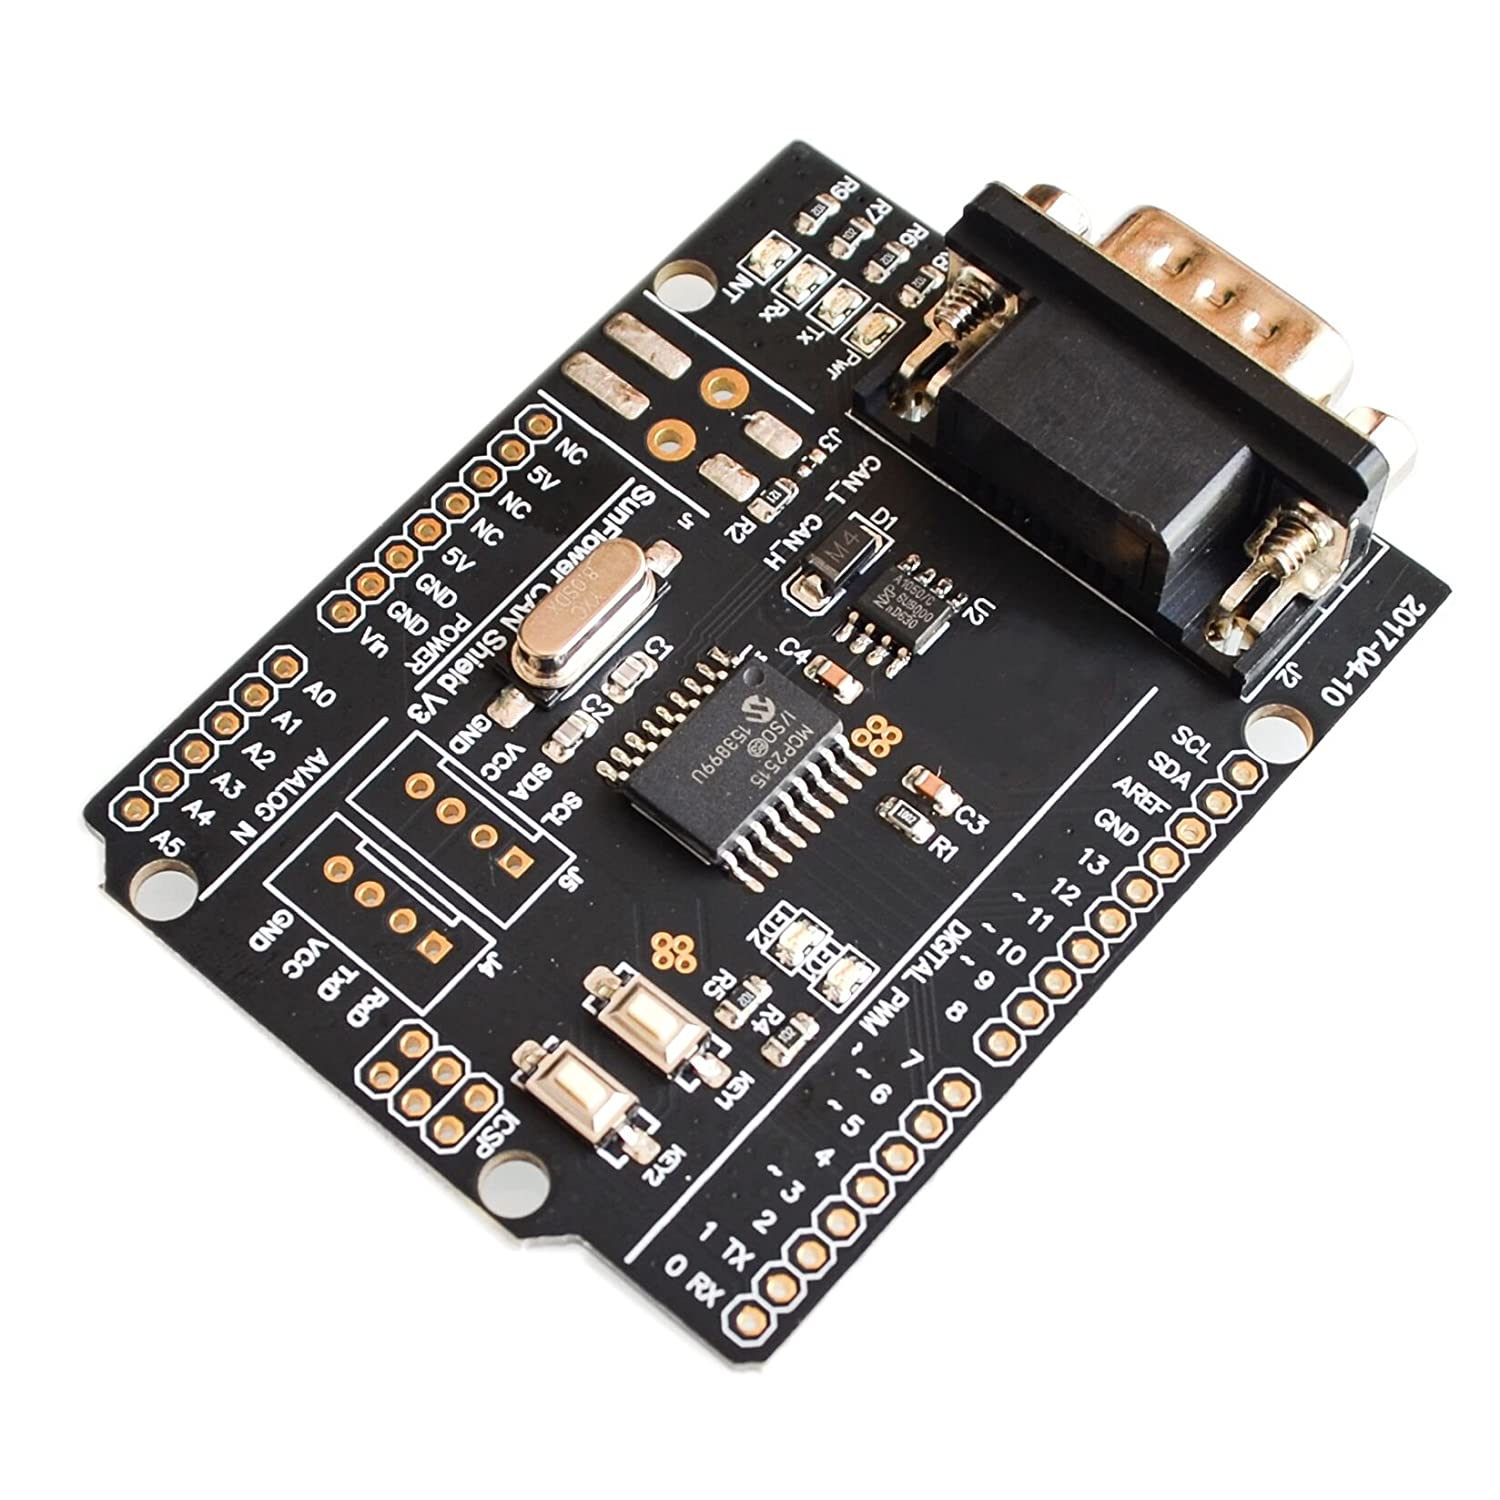 ! CAN Shield Expansion Board Connected to The car CAN Bus Communication Protocol